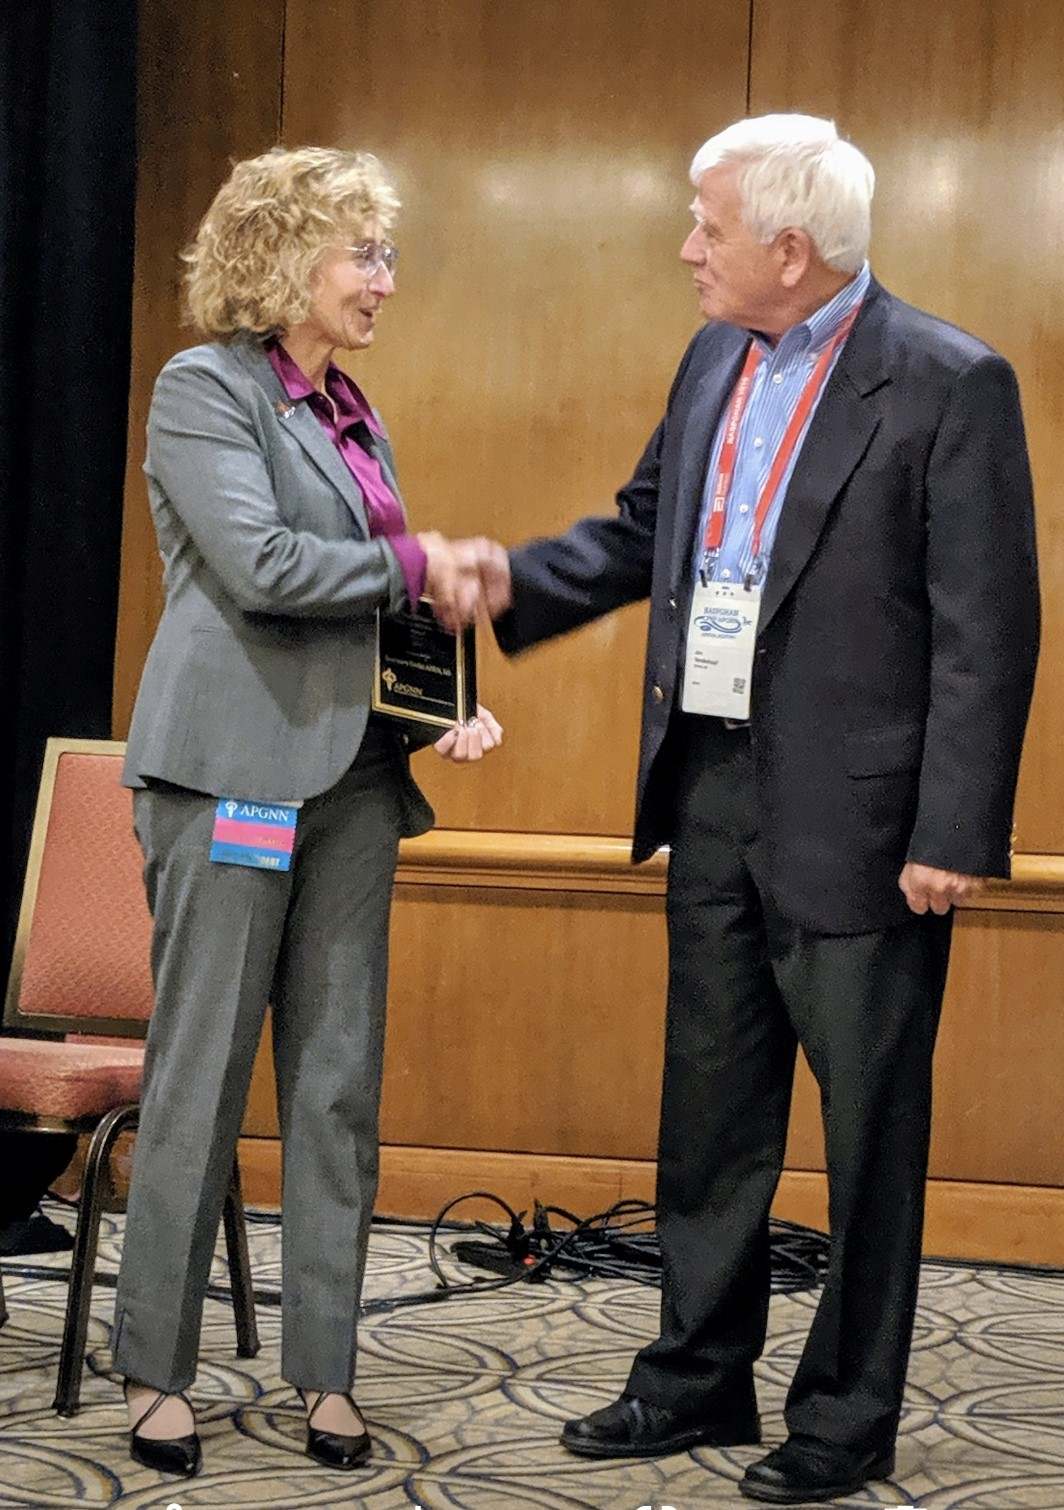 Rose Pauley, APRN and Jon Vanderhoof, M.D. shake hands as she accepts her award